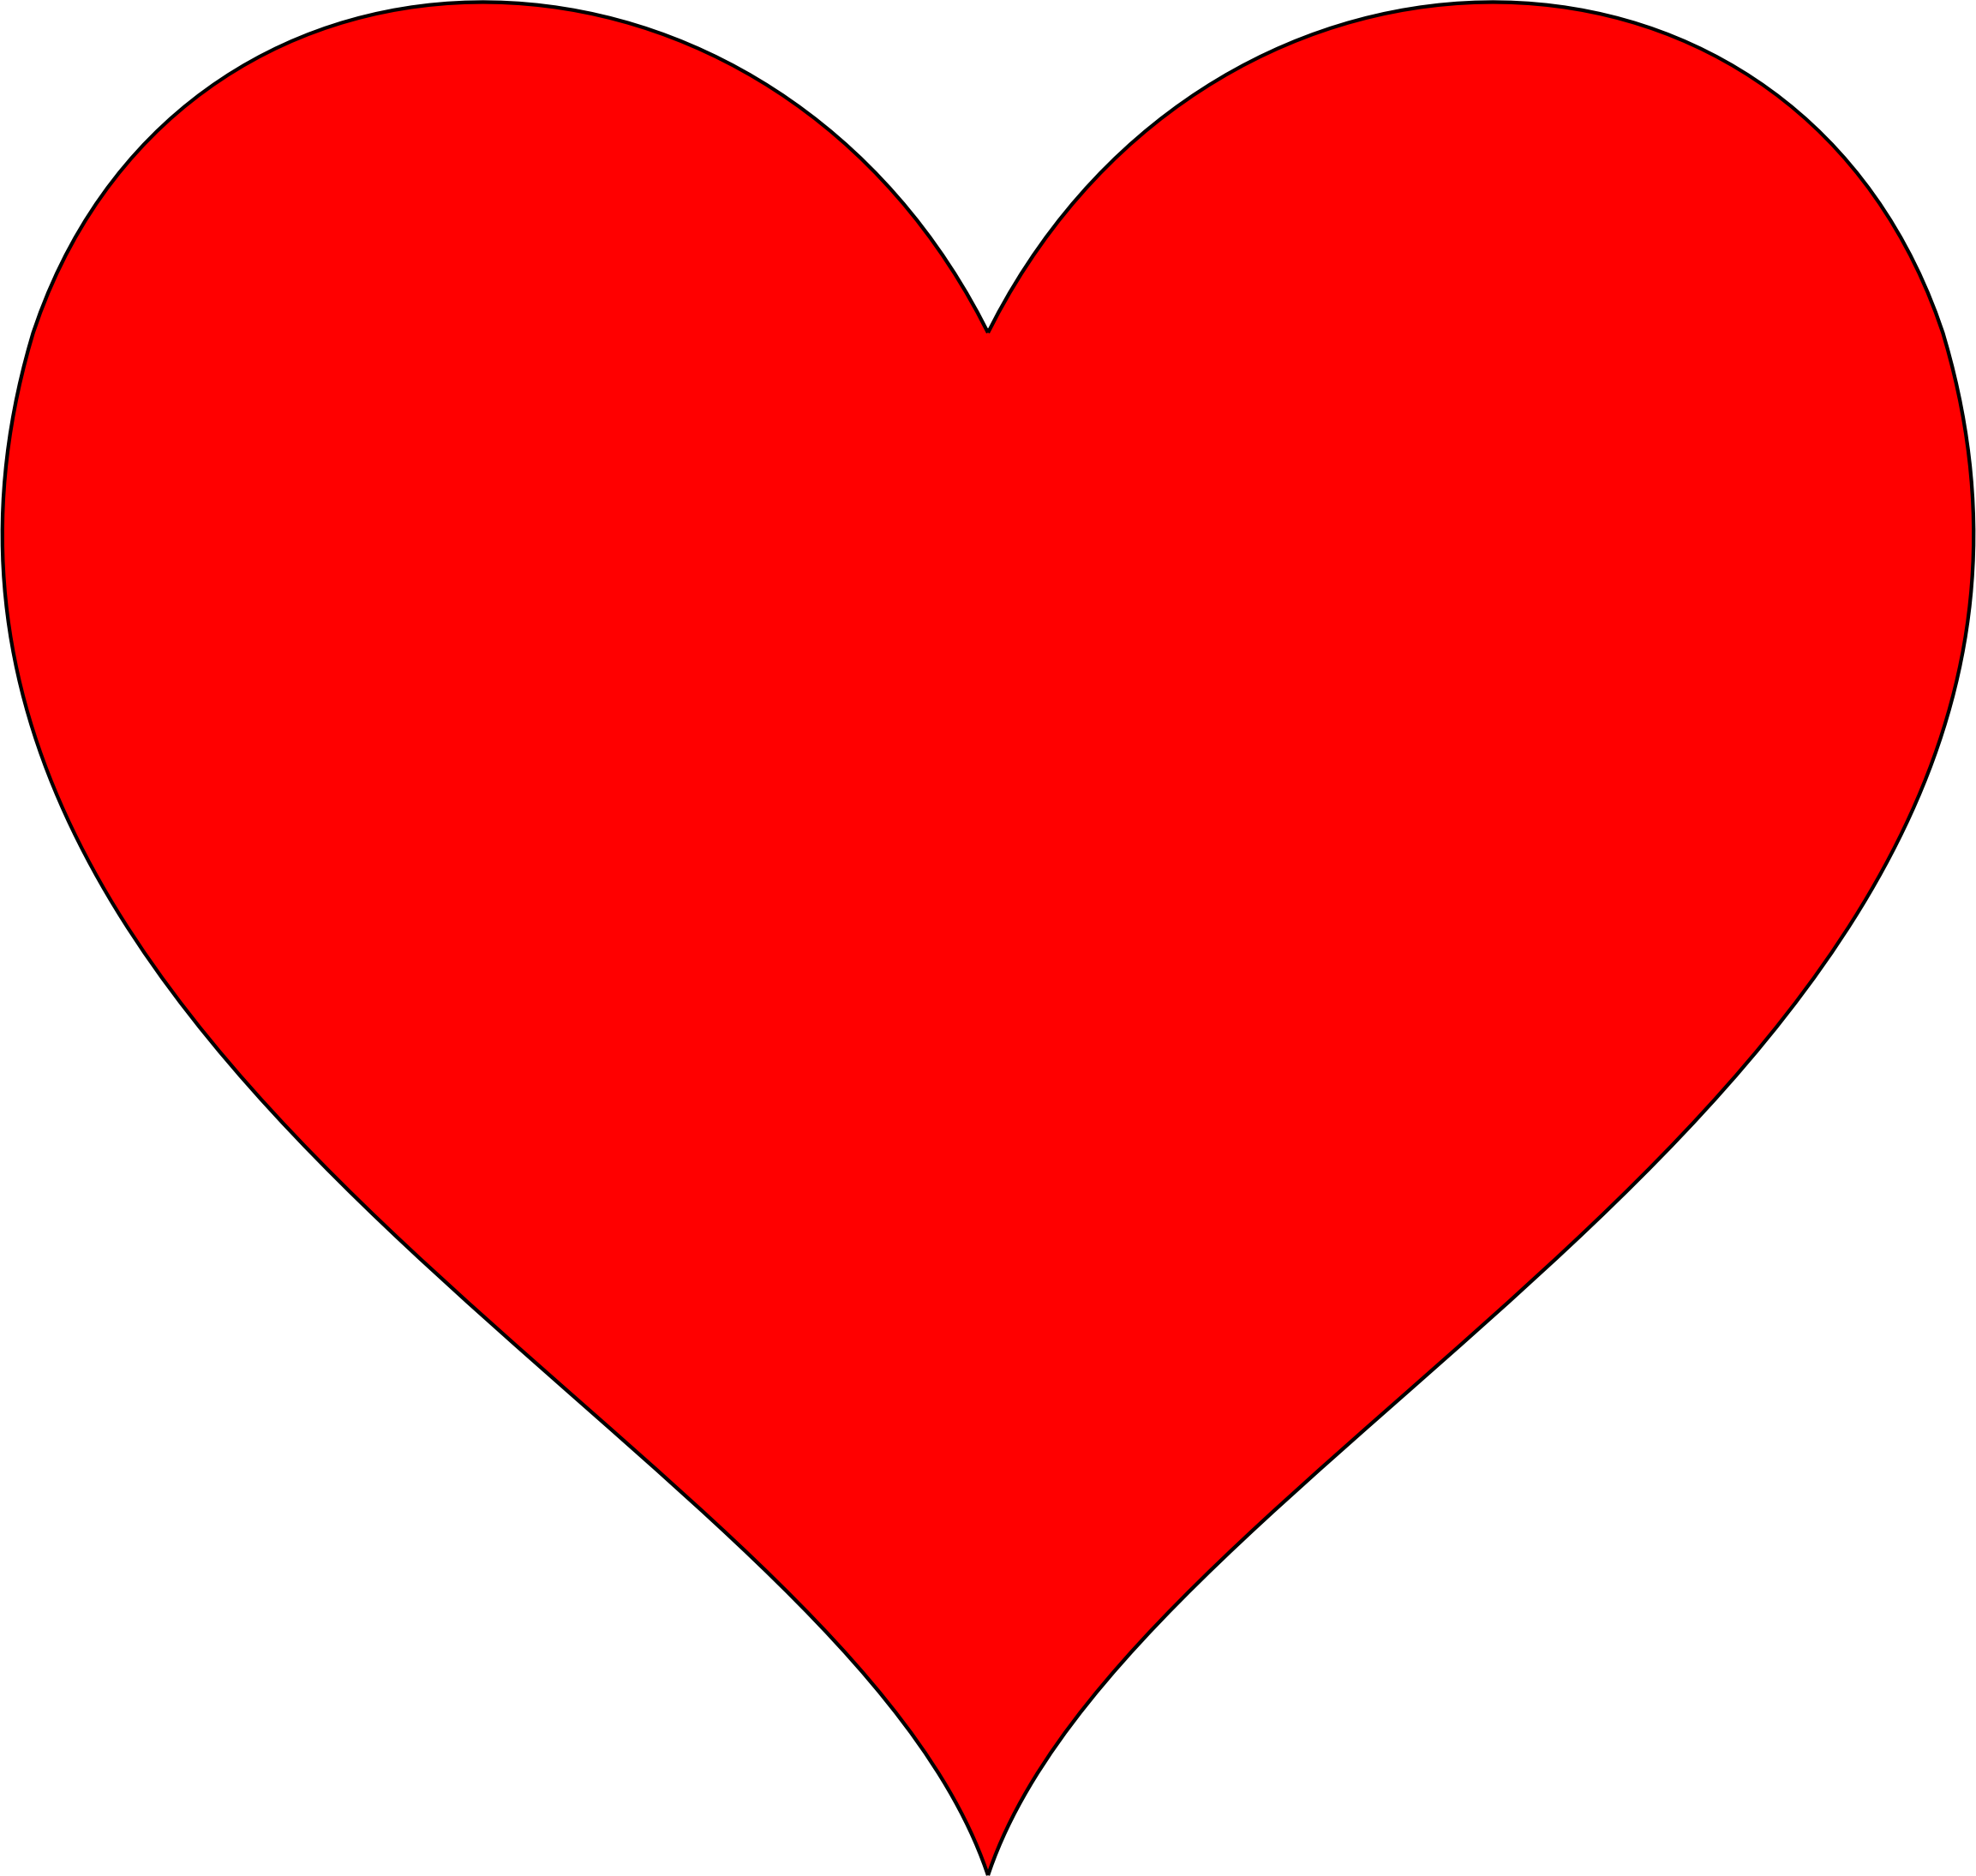 Hearts clipart science. Beating heart group